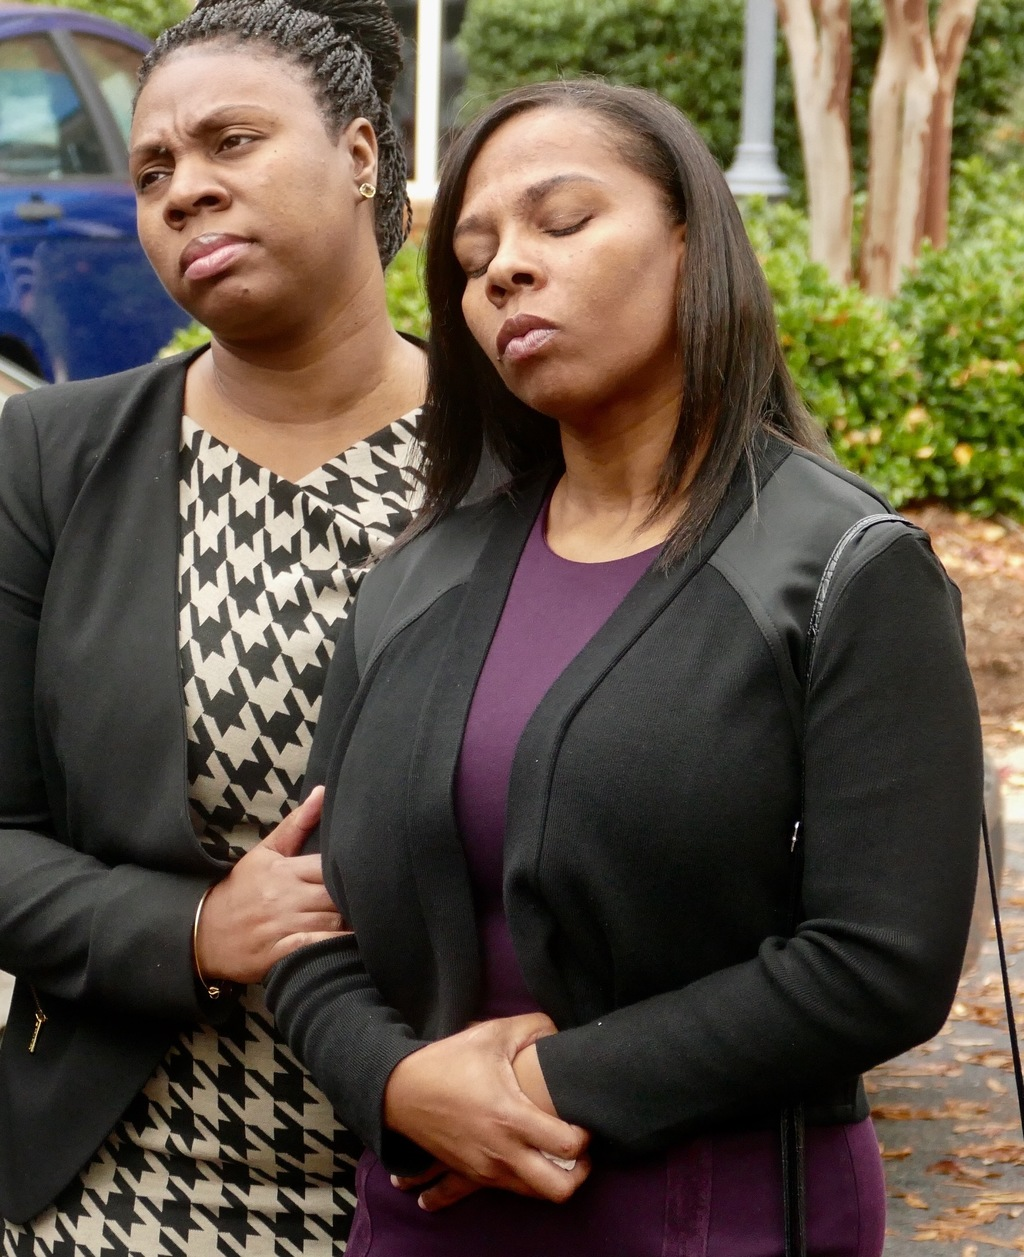 The family of Keith Lamont Scott including his wife Rakeyia Scott, right, attend a news conference after finding out charges would not ...